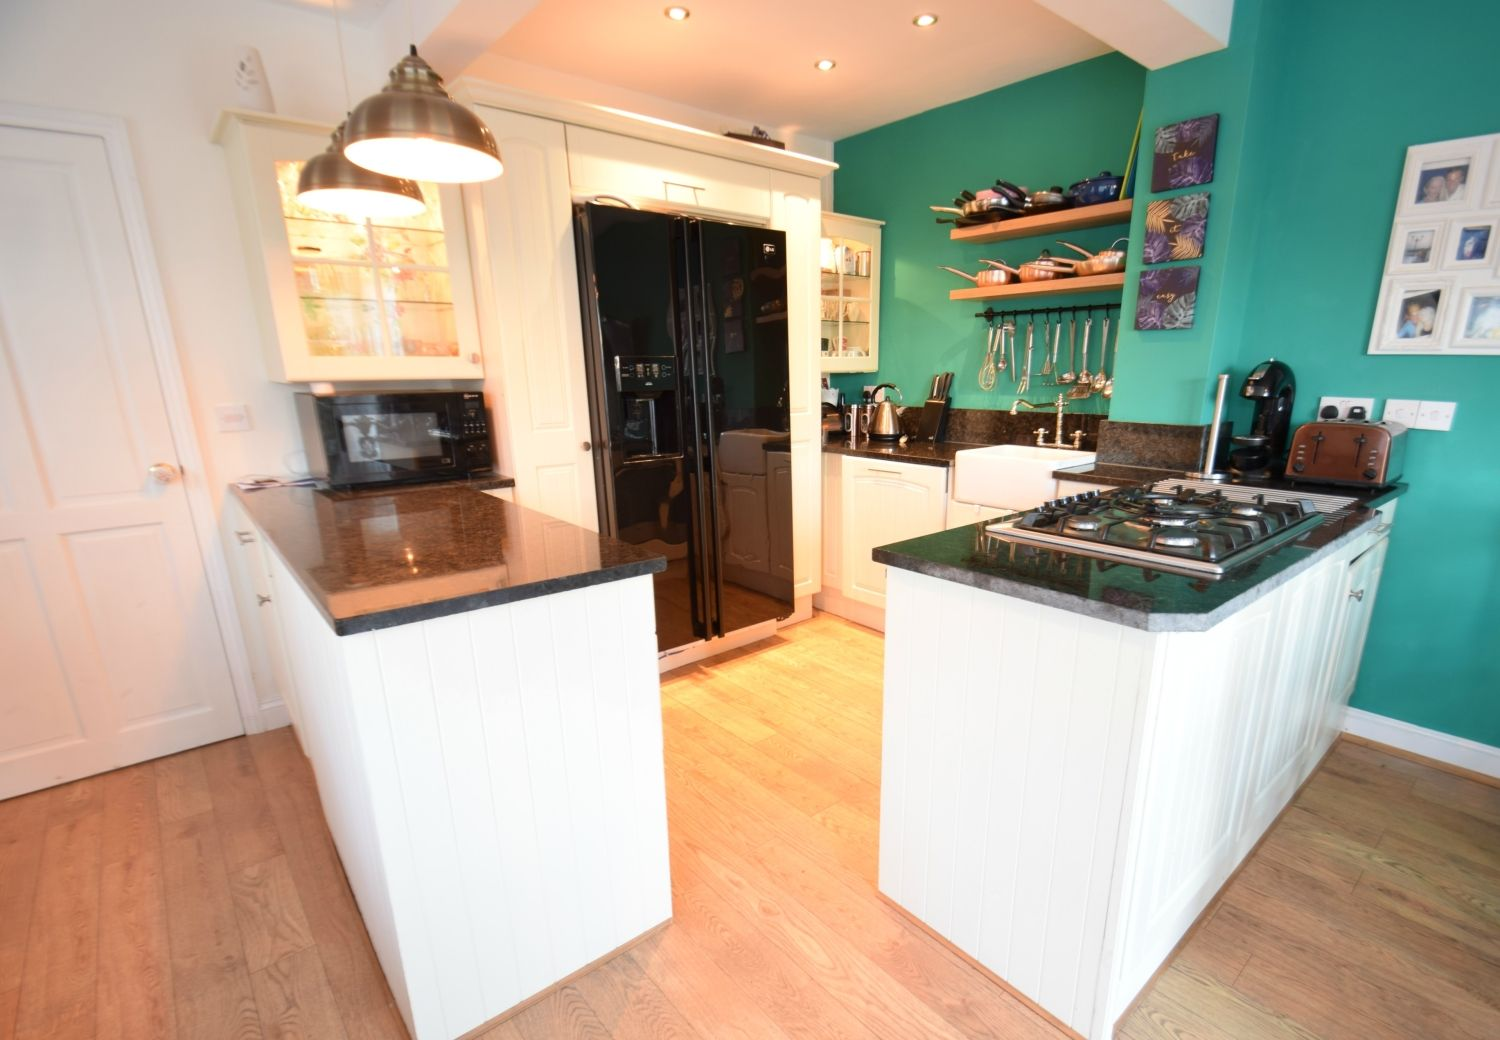 4 bed semi-detached for sale in Upland Grove, Bromsgrove, B61  - Property Image 2